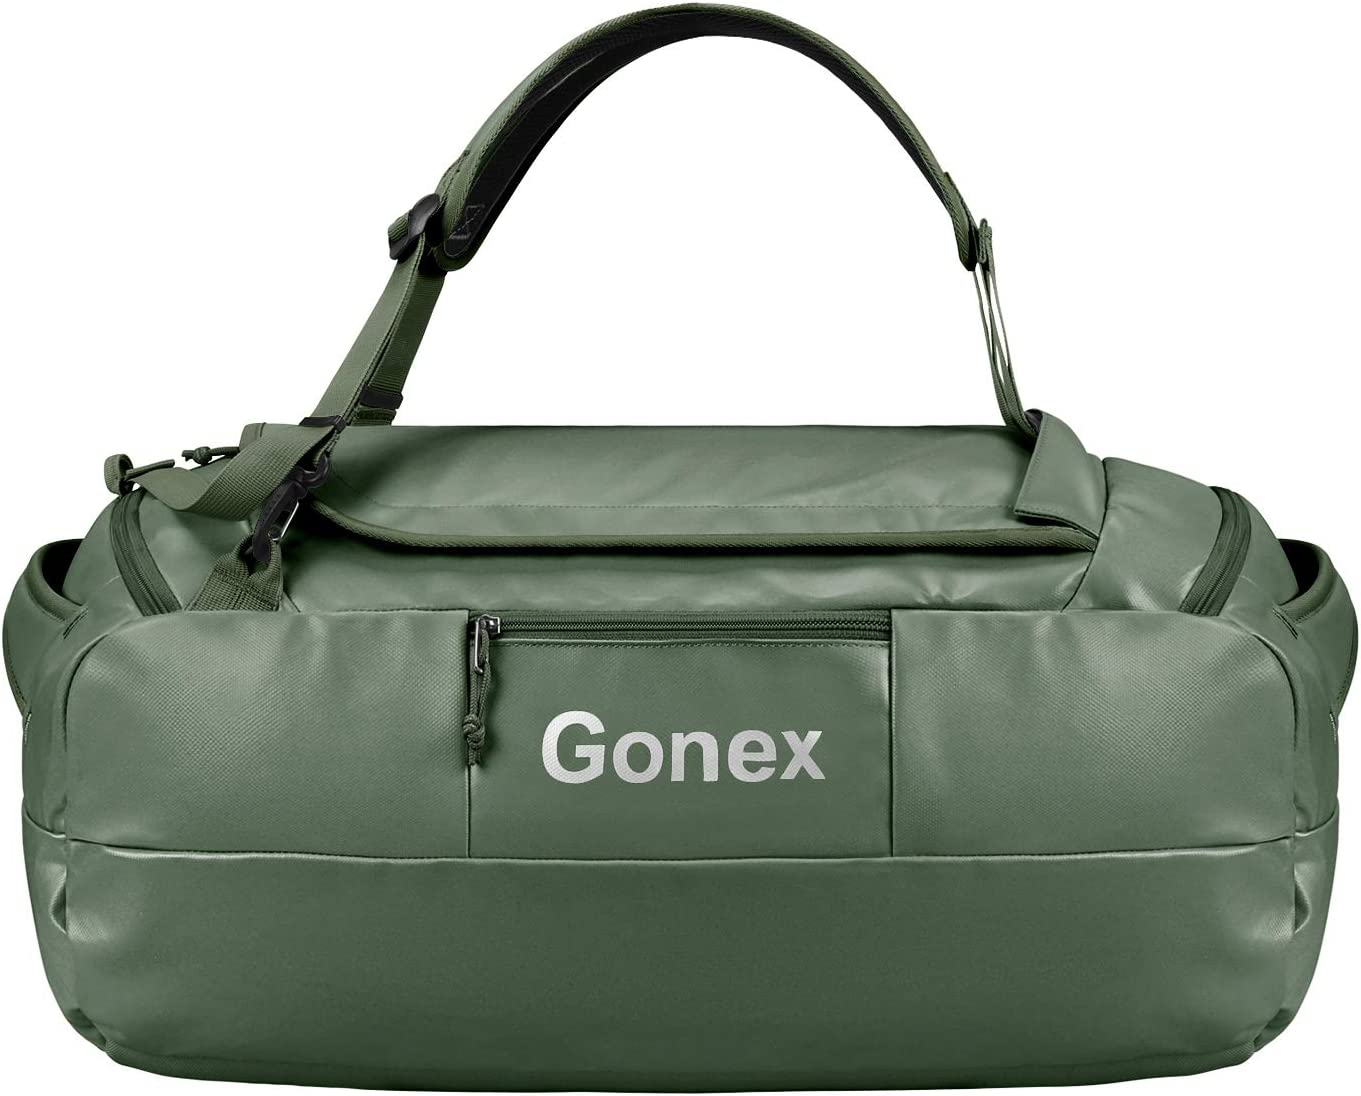 Gonex 80L Water Repellent Duffel Bag Backpack Outdoor Heavy Duty Duffle Bag with backpack straps for Hiking Camping Travelling Cycling for Men Women Black